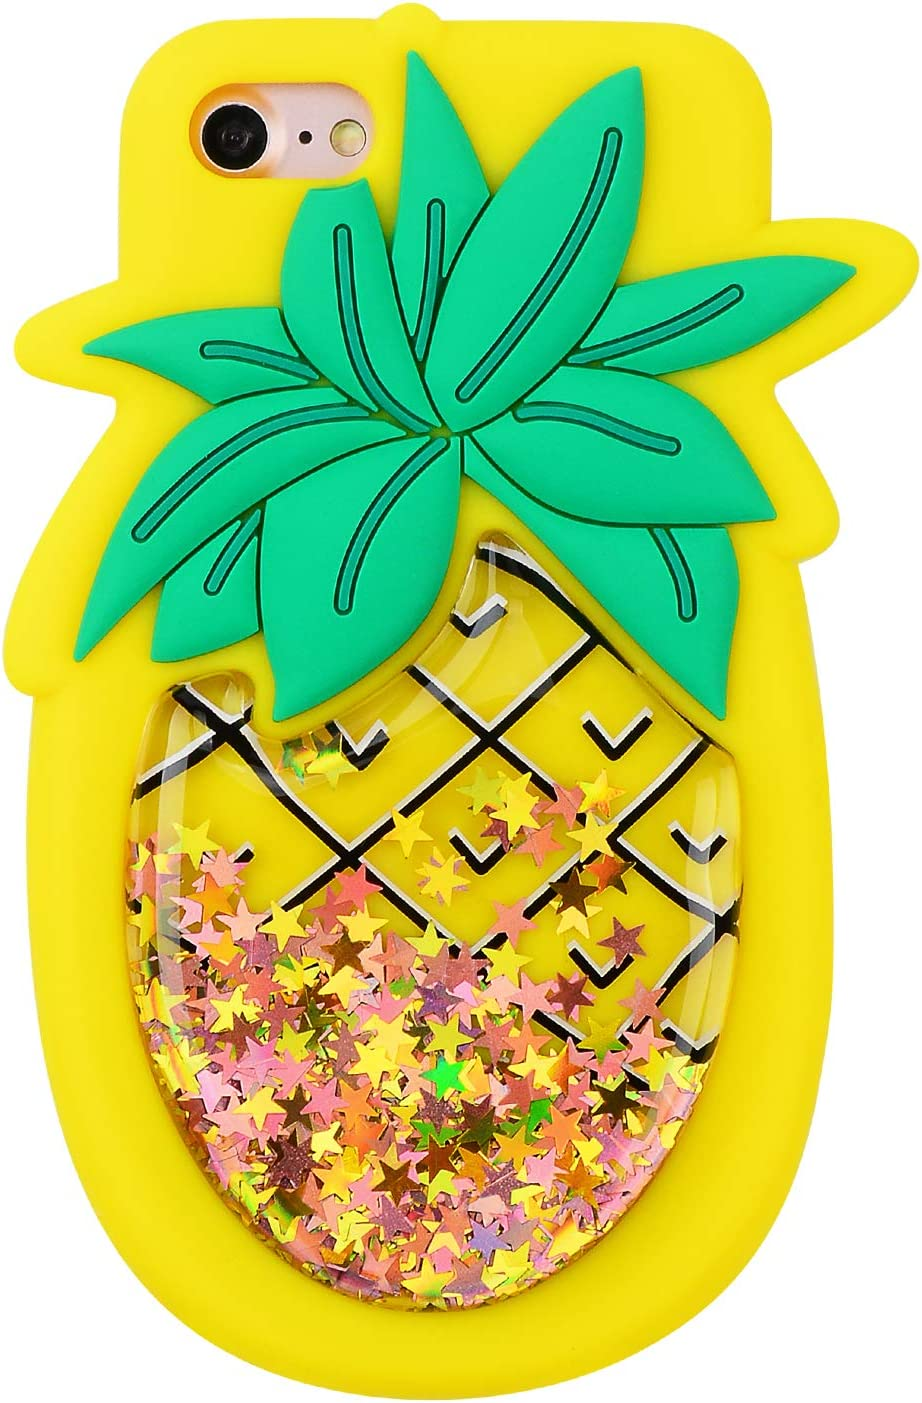 Quicksand Pineapple Case for iPhone 6 6S,Soft Cute Silicone 3D Cartoon Fruit Food Cover,Shockproof Vivid Color Kids Girls Bling Glitter Rubber Kawaii Character Fashion Cases for iPhone 6 4.7""